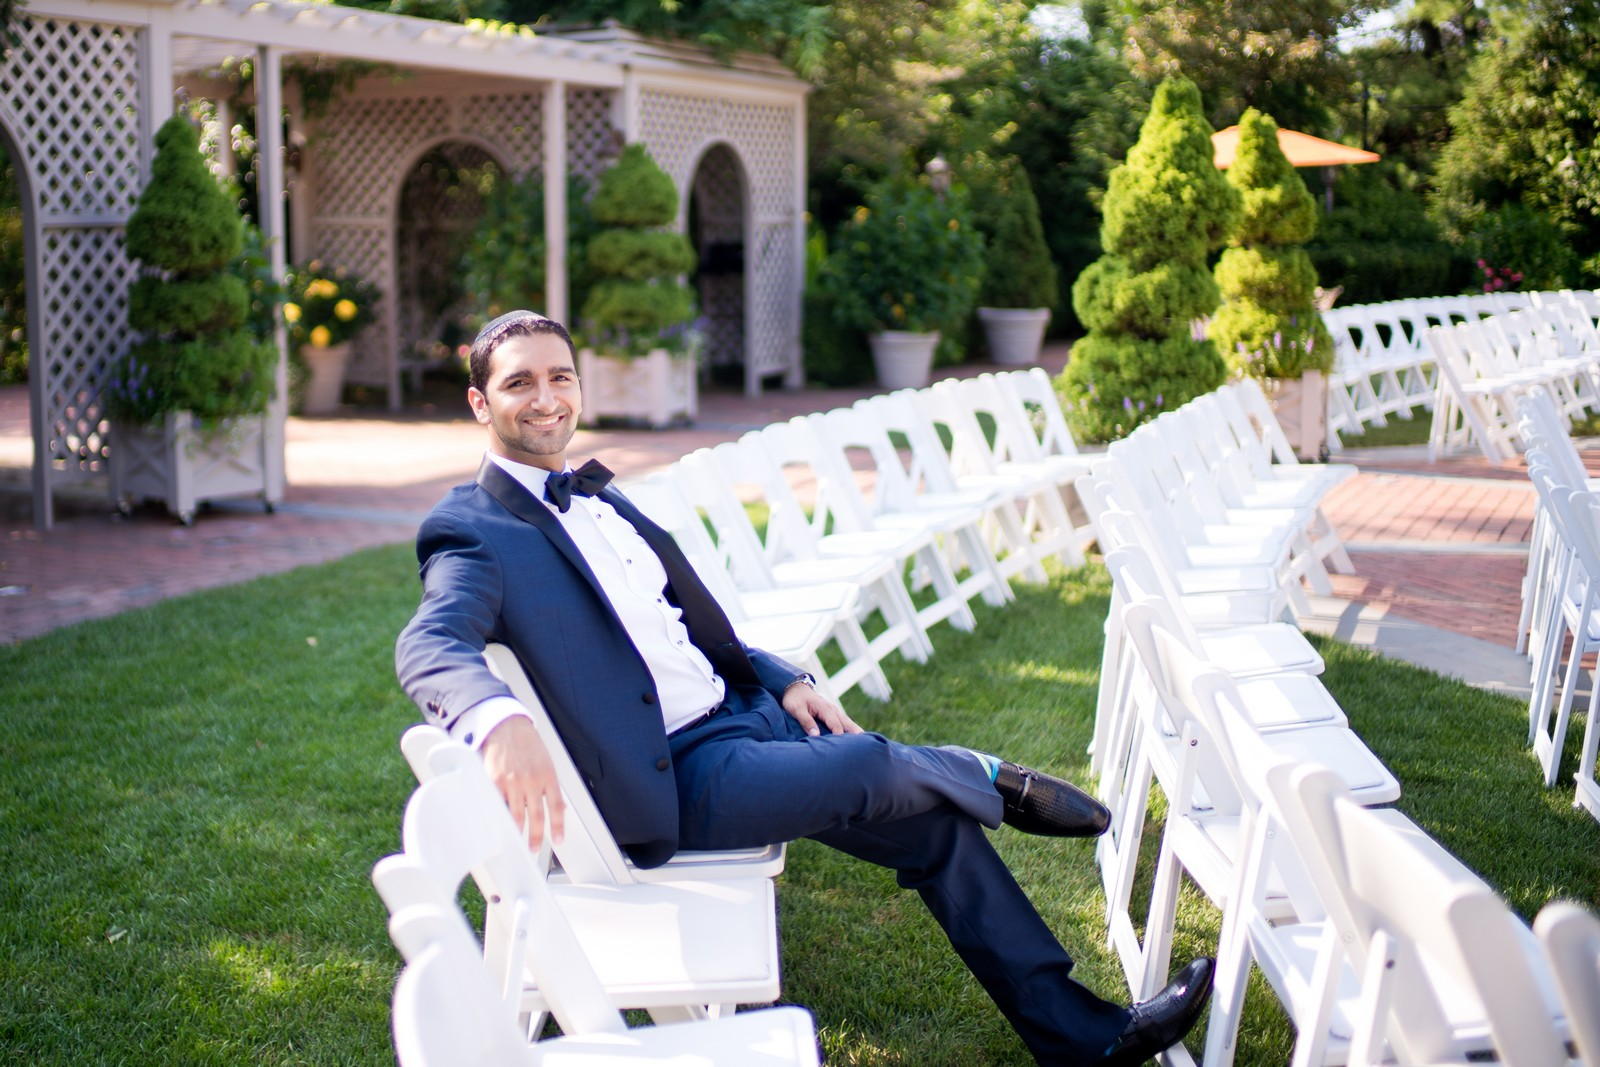 Sam and Yishai's Modern Orthodox Jewish Wedding at Crest Hollow Country Club, Woodbury NY, Photos by Chaim Schvarcz, Groom Portraits